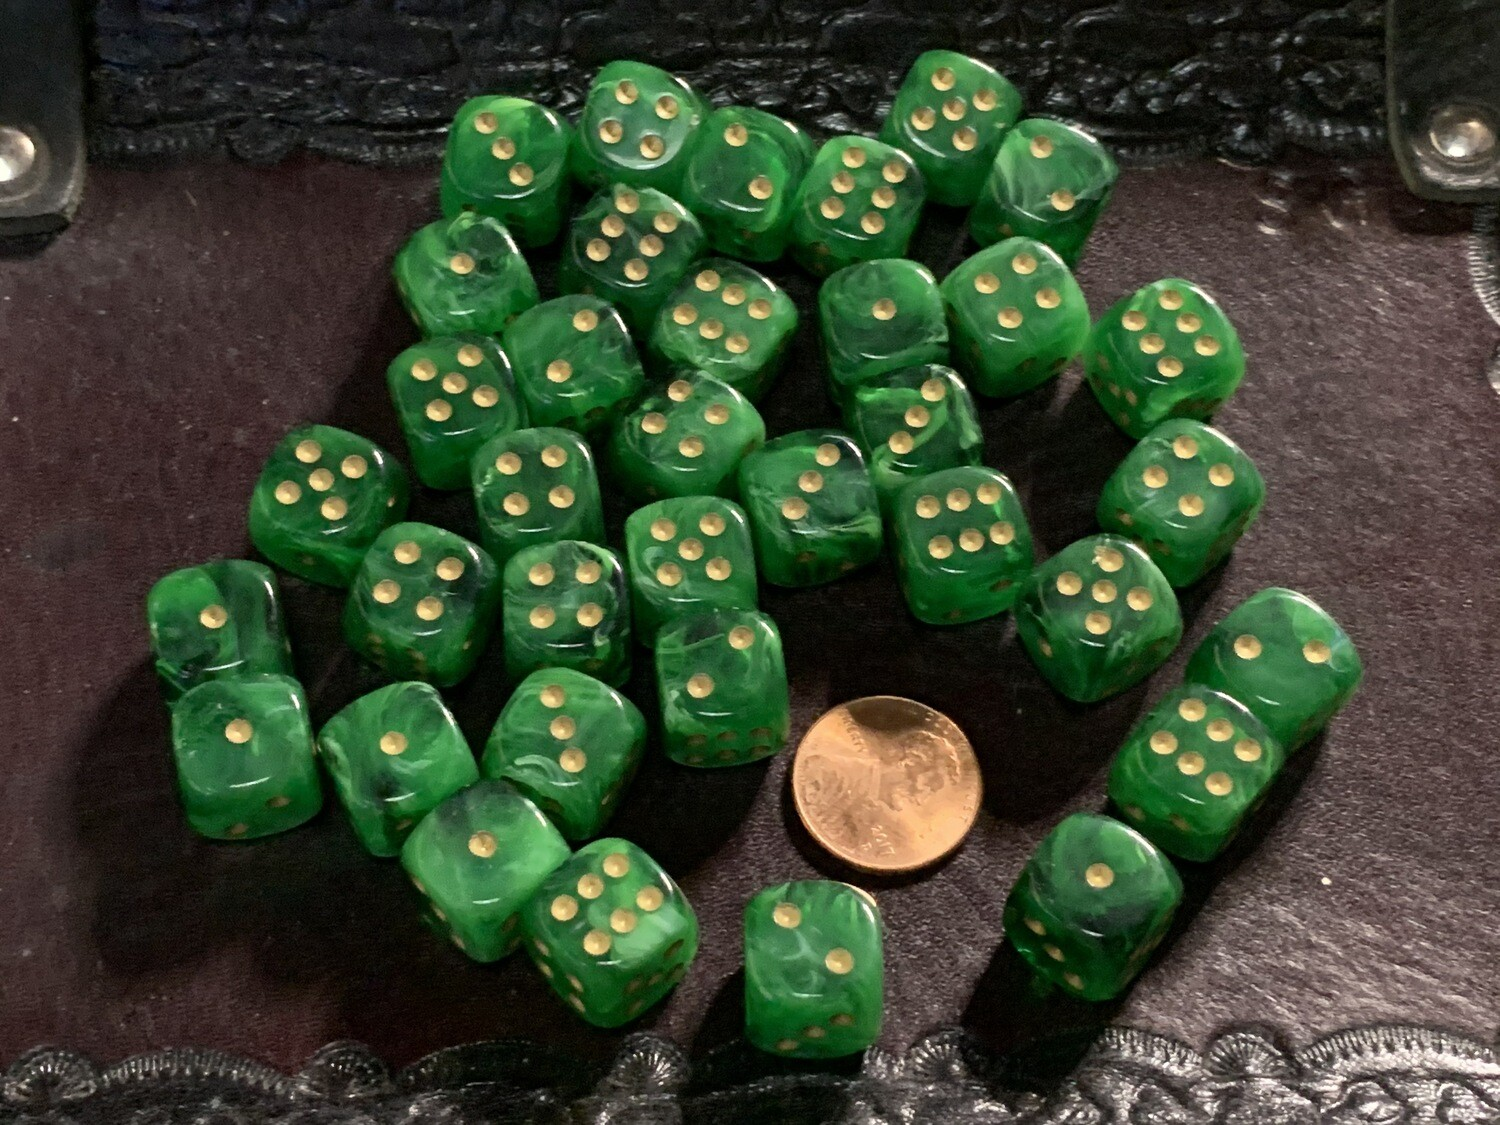 12mm Set of 36 D6 Dice - Chessex Vortex Green with Gold RPG Tabletop Gaming